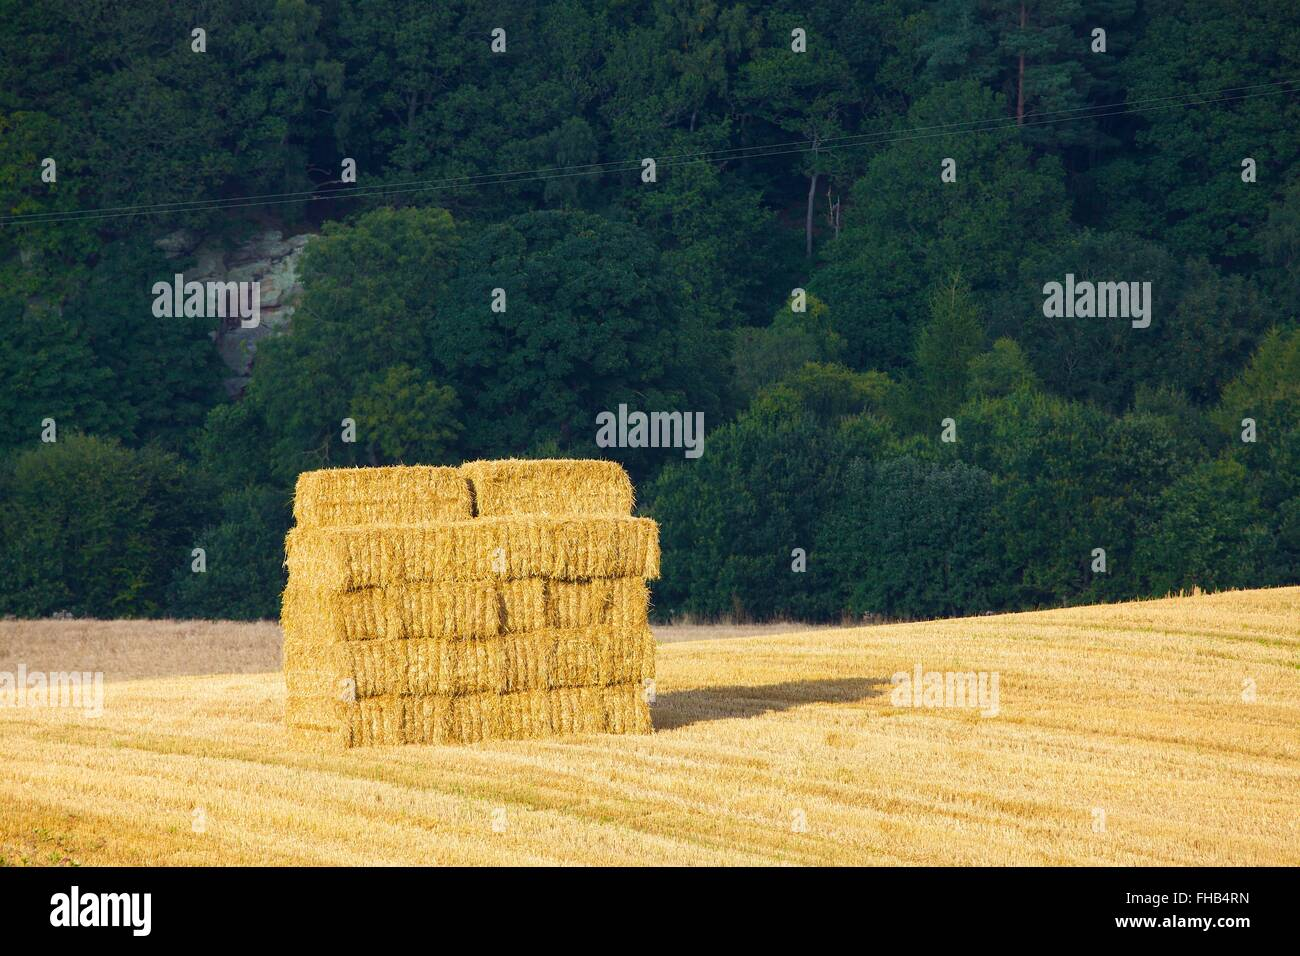 Stack of square hay bails in harvested field. Woodland background. - Stock Image